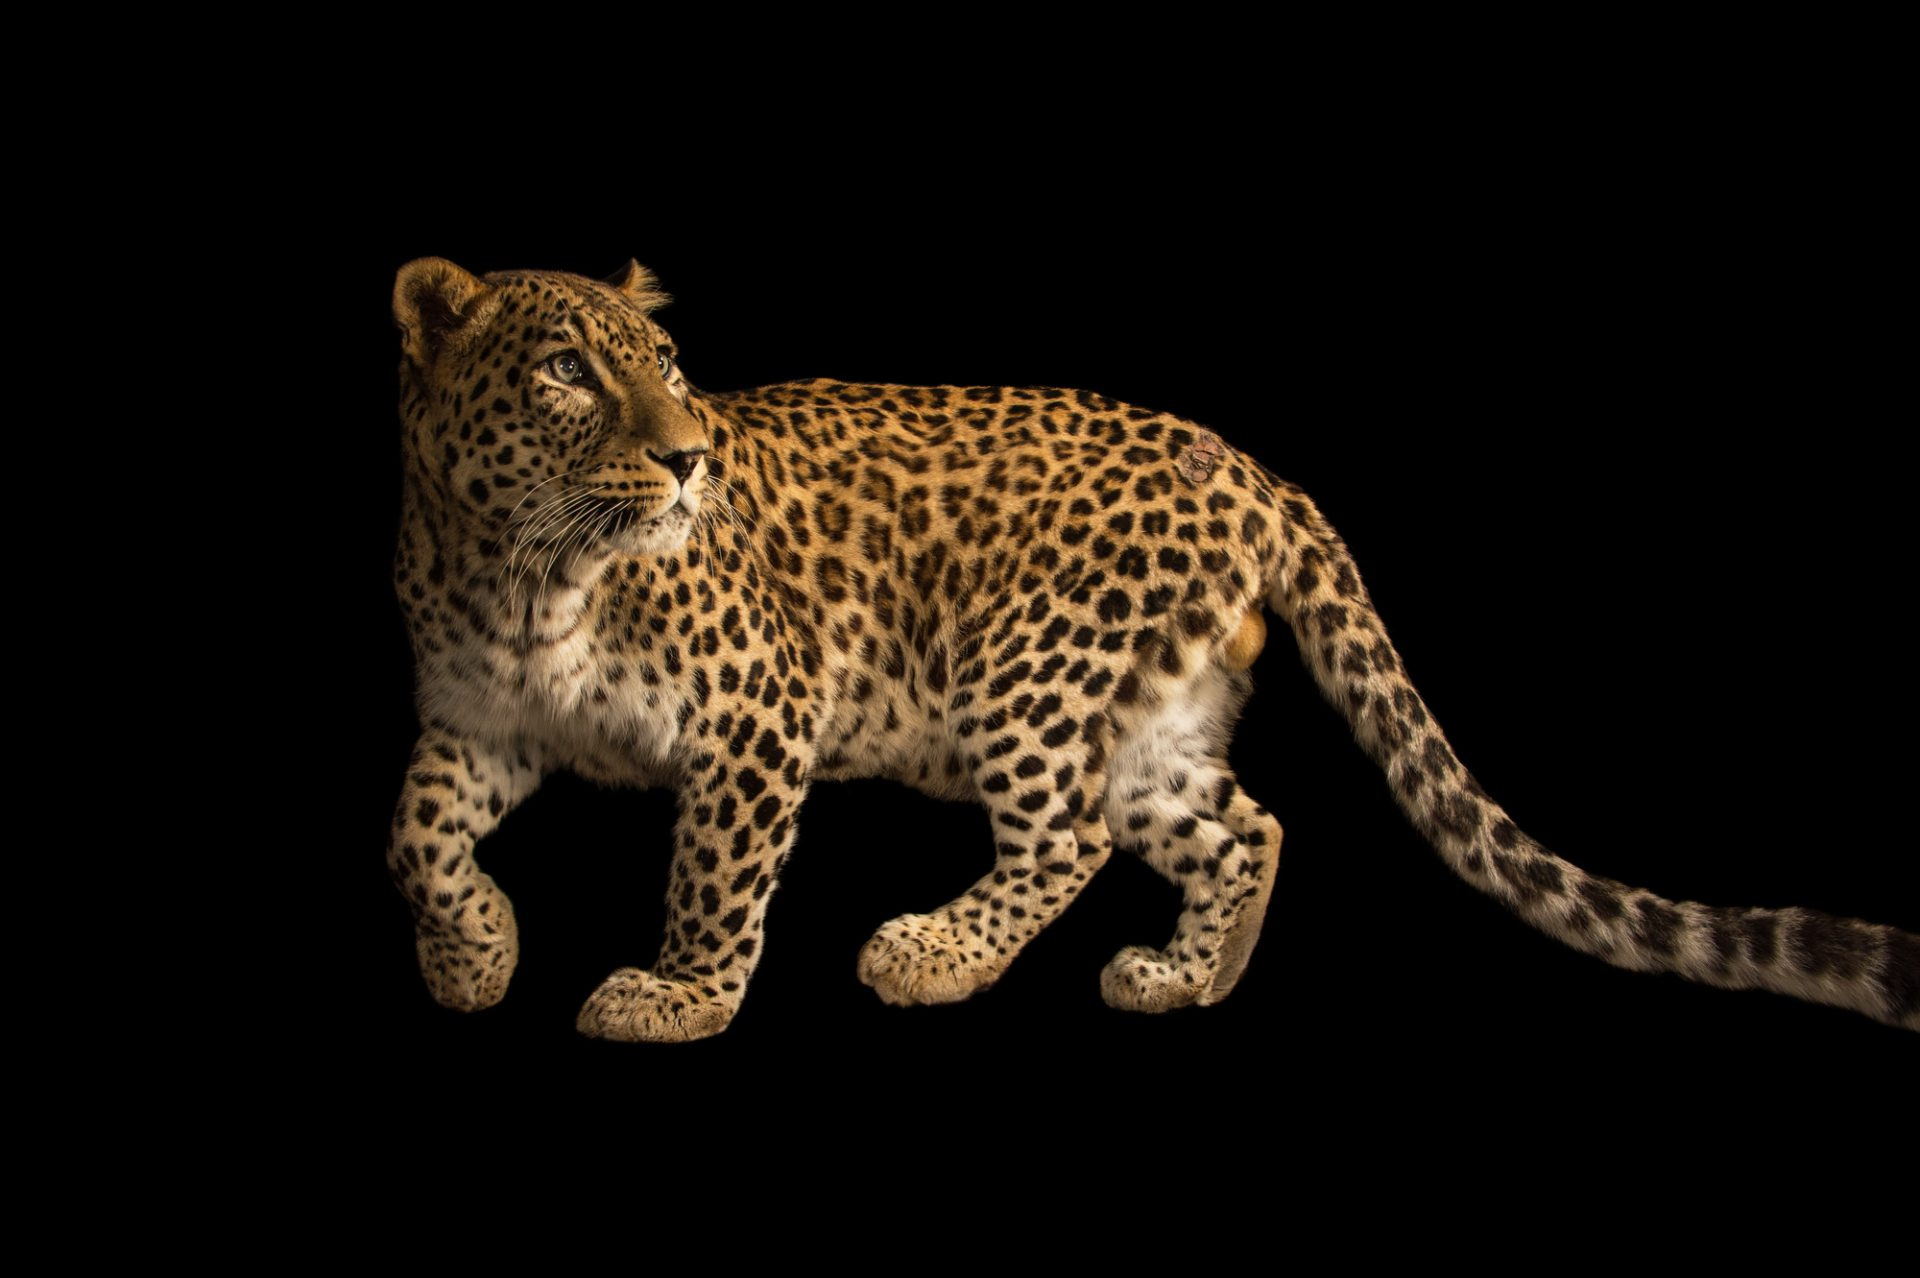 Picture of an endangered Persian leopard (Panthera pardus saxicolor) at the Budapest Zoo.